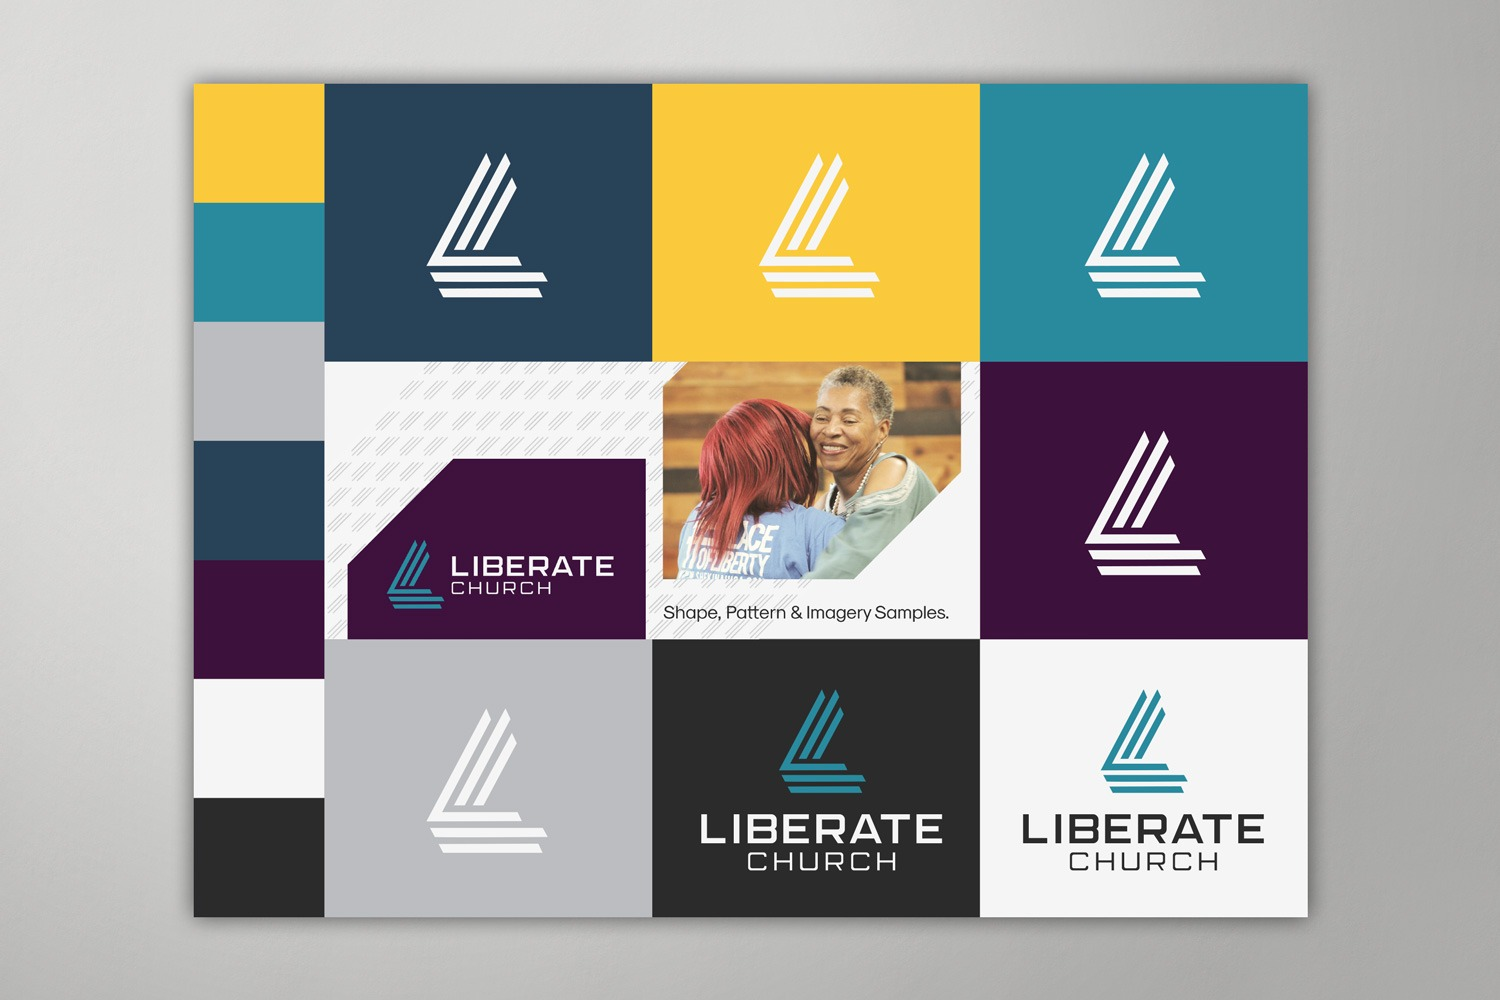 church logos images and branding ideas brand guide with samples of style